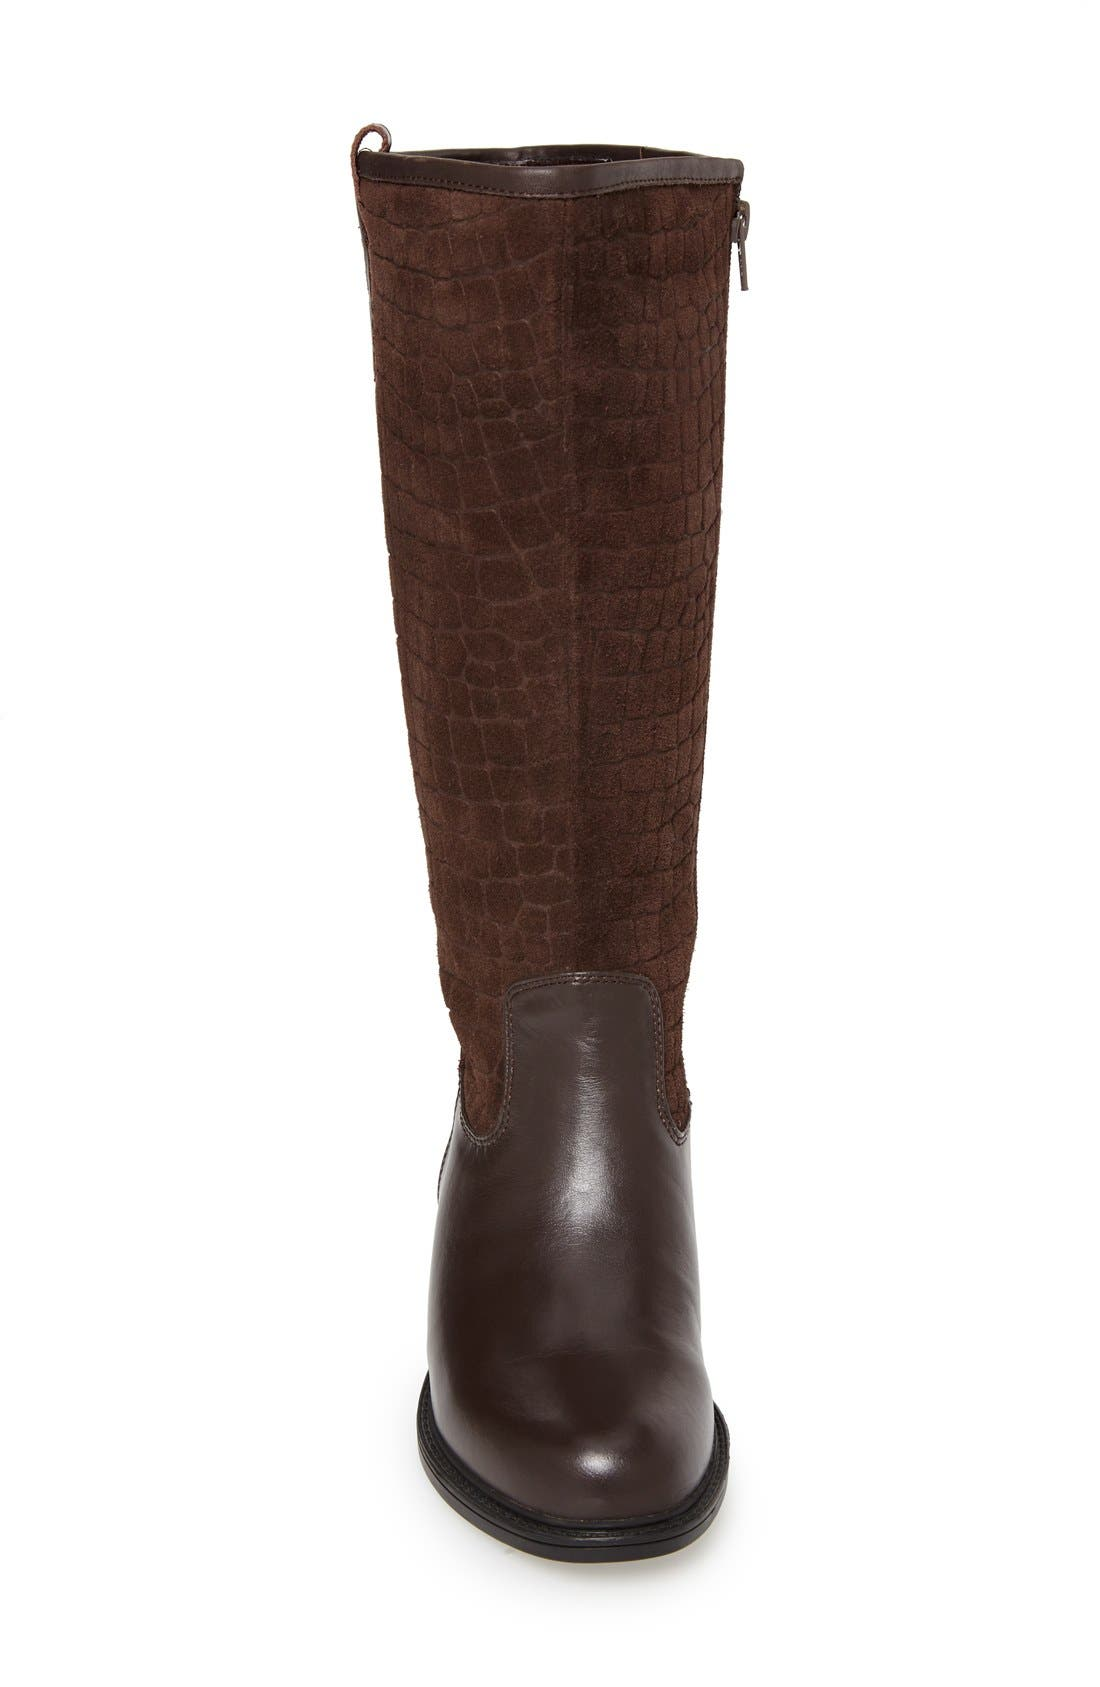 'Best' Calfskin Leather & Suede Boot,                             Alternate thumbnail 3, color,                             Brown Calf/ Suede